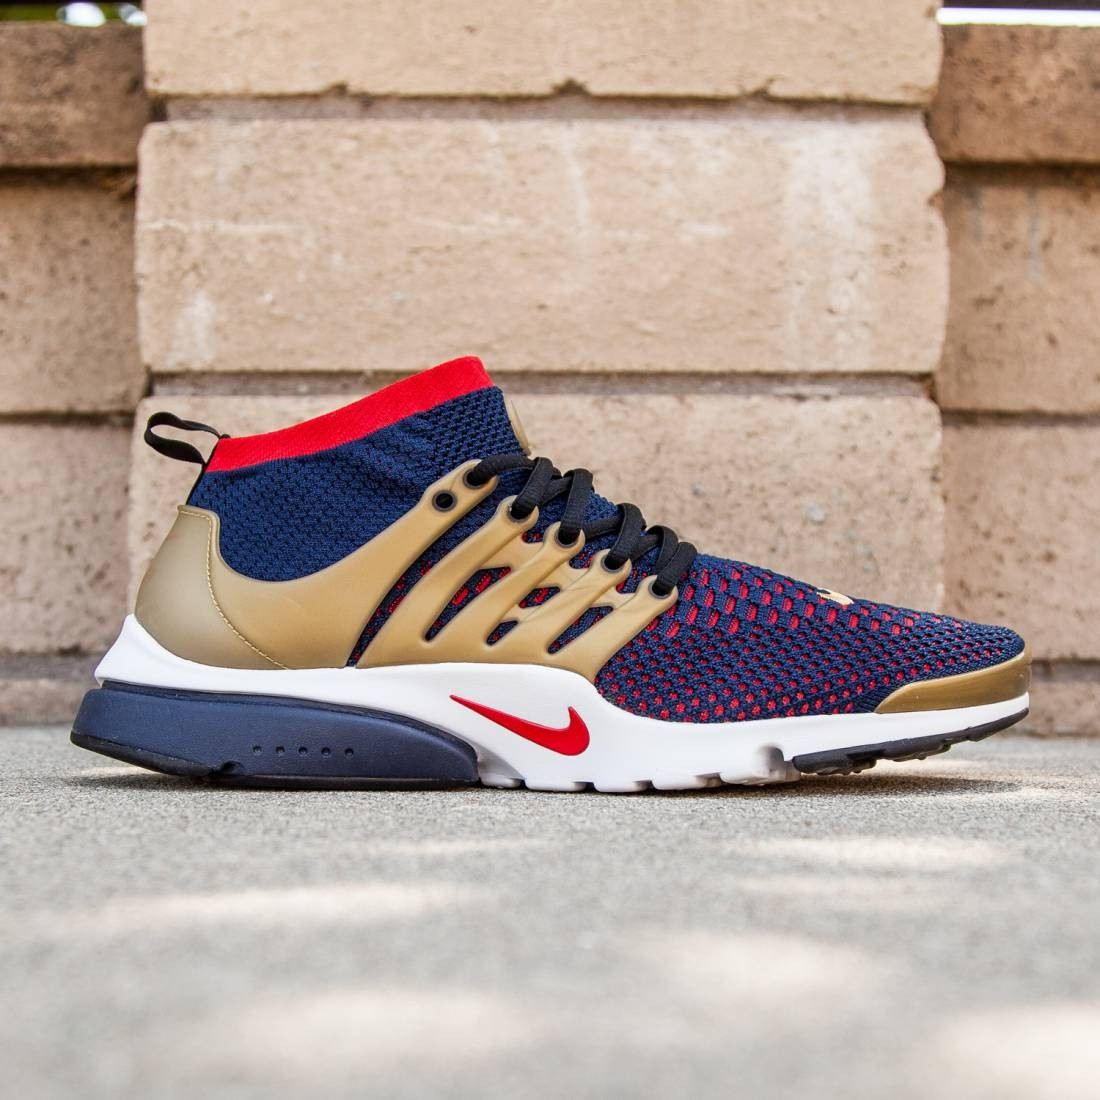 a63706d563c Nike Men Nike Air Presto Ultra Flyknit Shoe (college navy / comet  red-metallic gold)